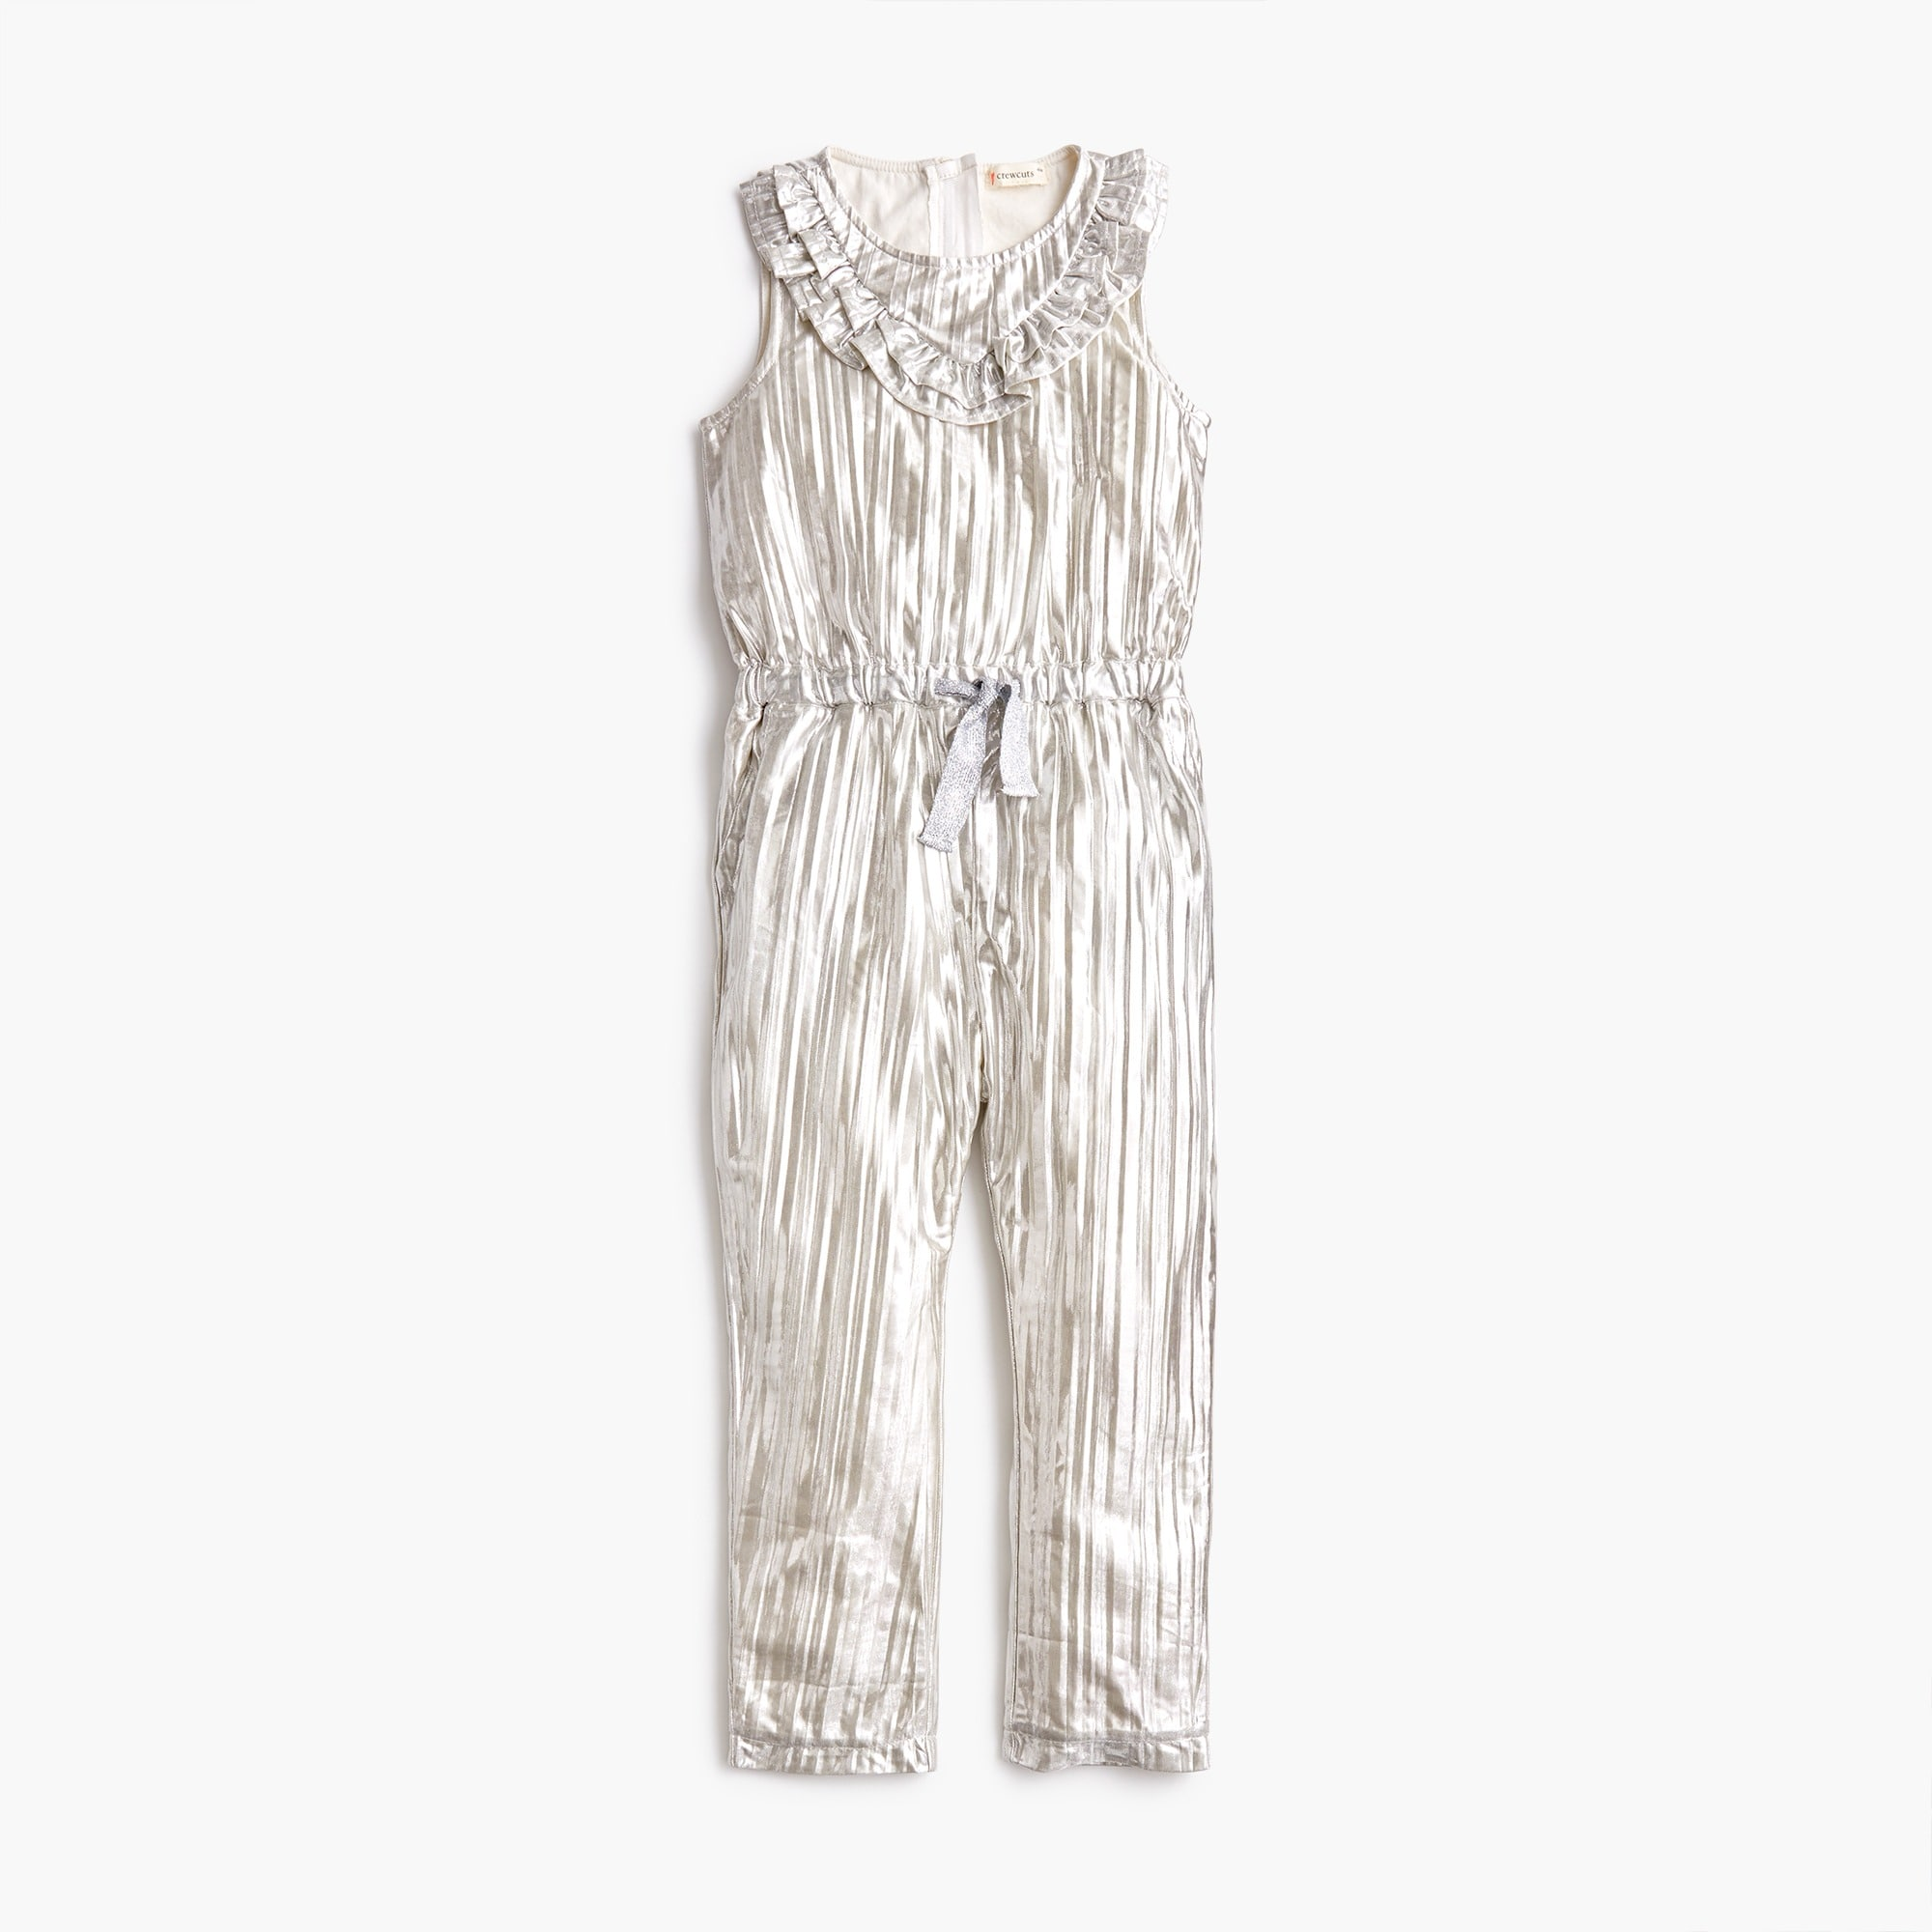 Image 2 for Girls' metallic ruffle-trimmed jumpsuit